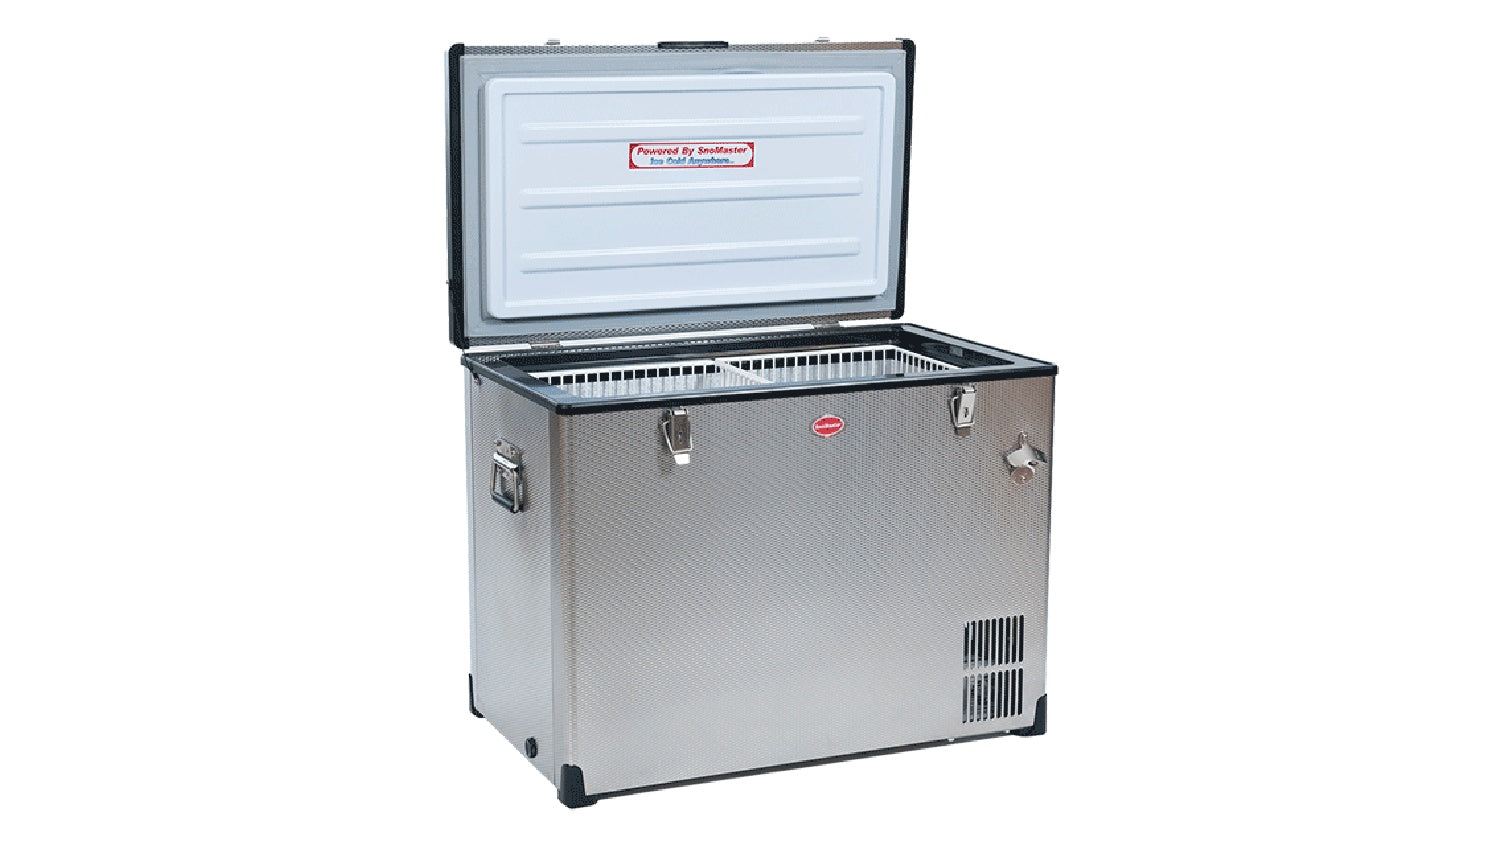 SnoMaster EXPEDITION SERIES (EX95) Stainless Steel AC/DC Fridge/Freezer